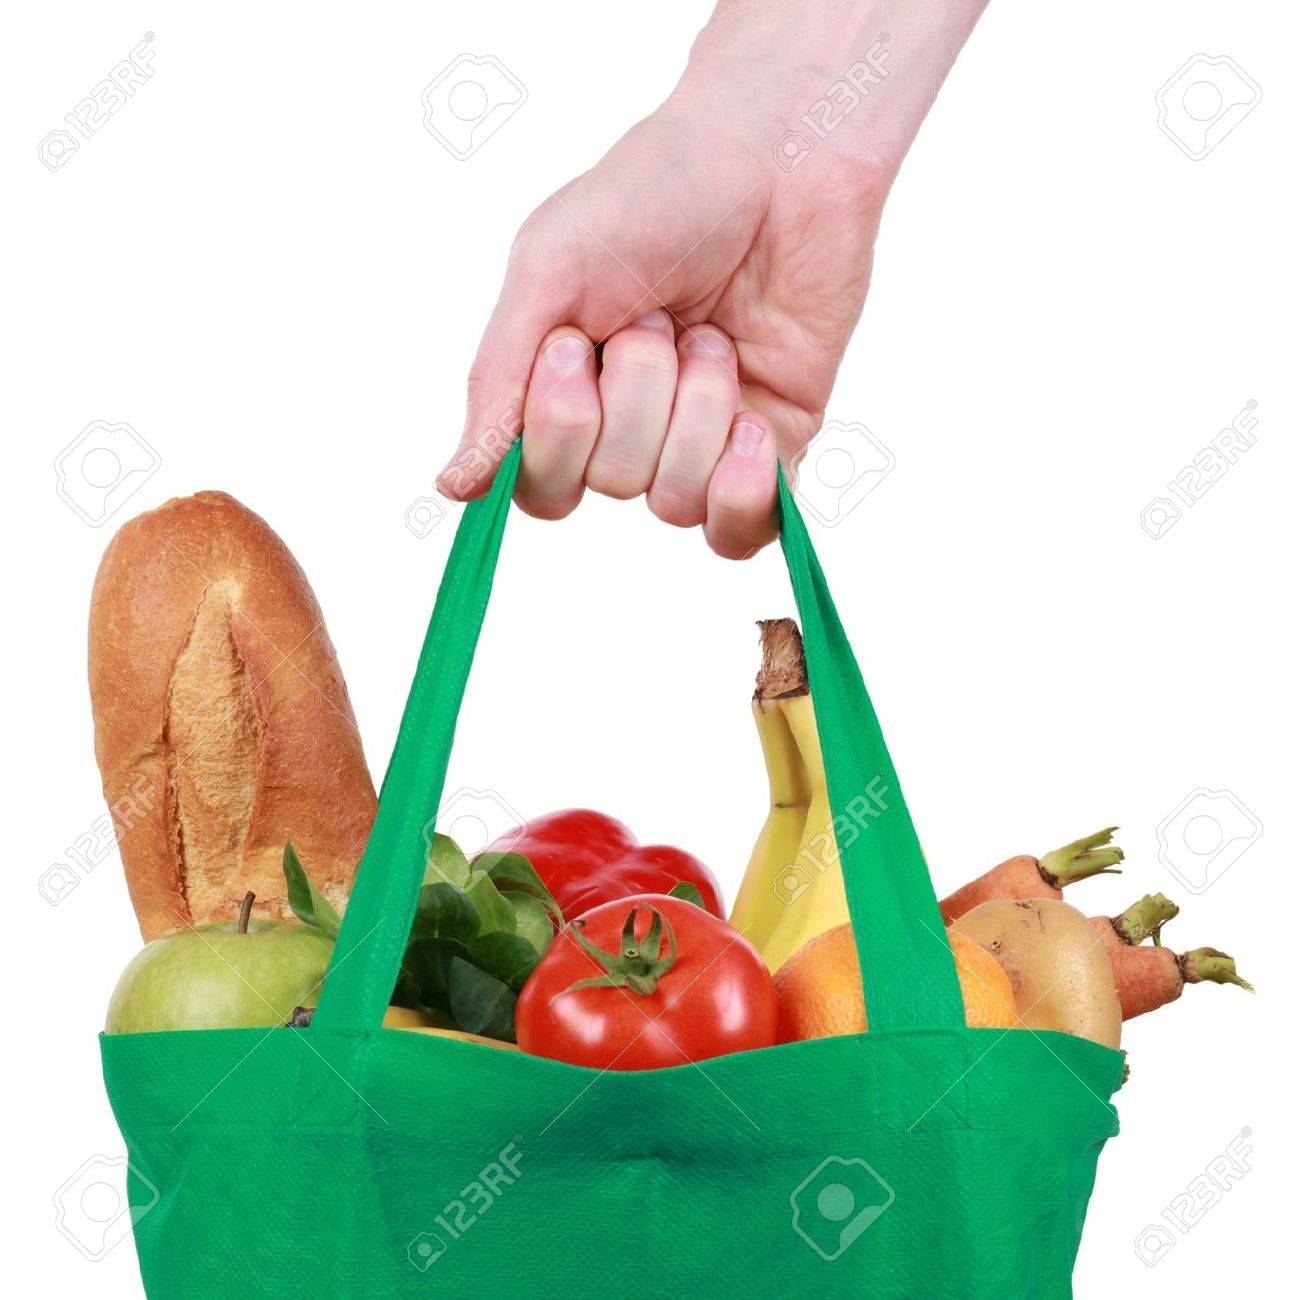 Hand Holding A Reusable Shopping Bag Filled With Fruits And ...